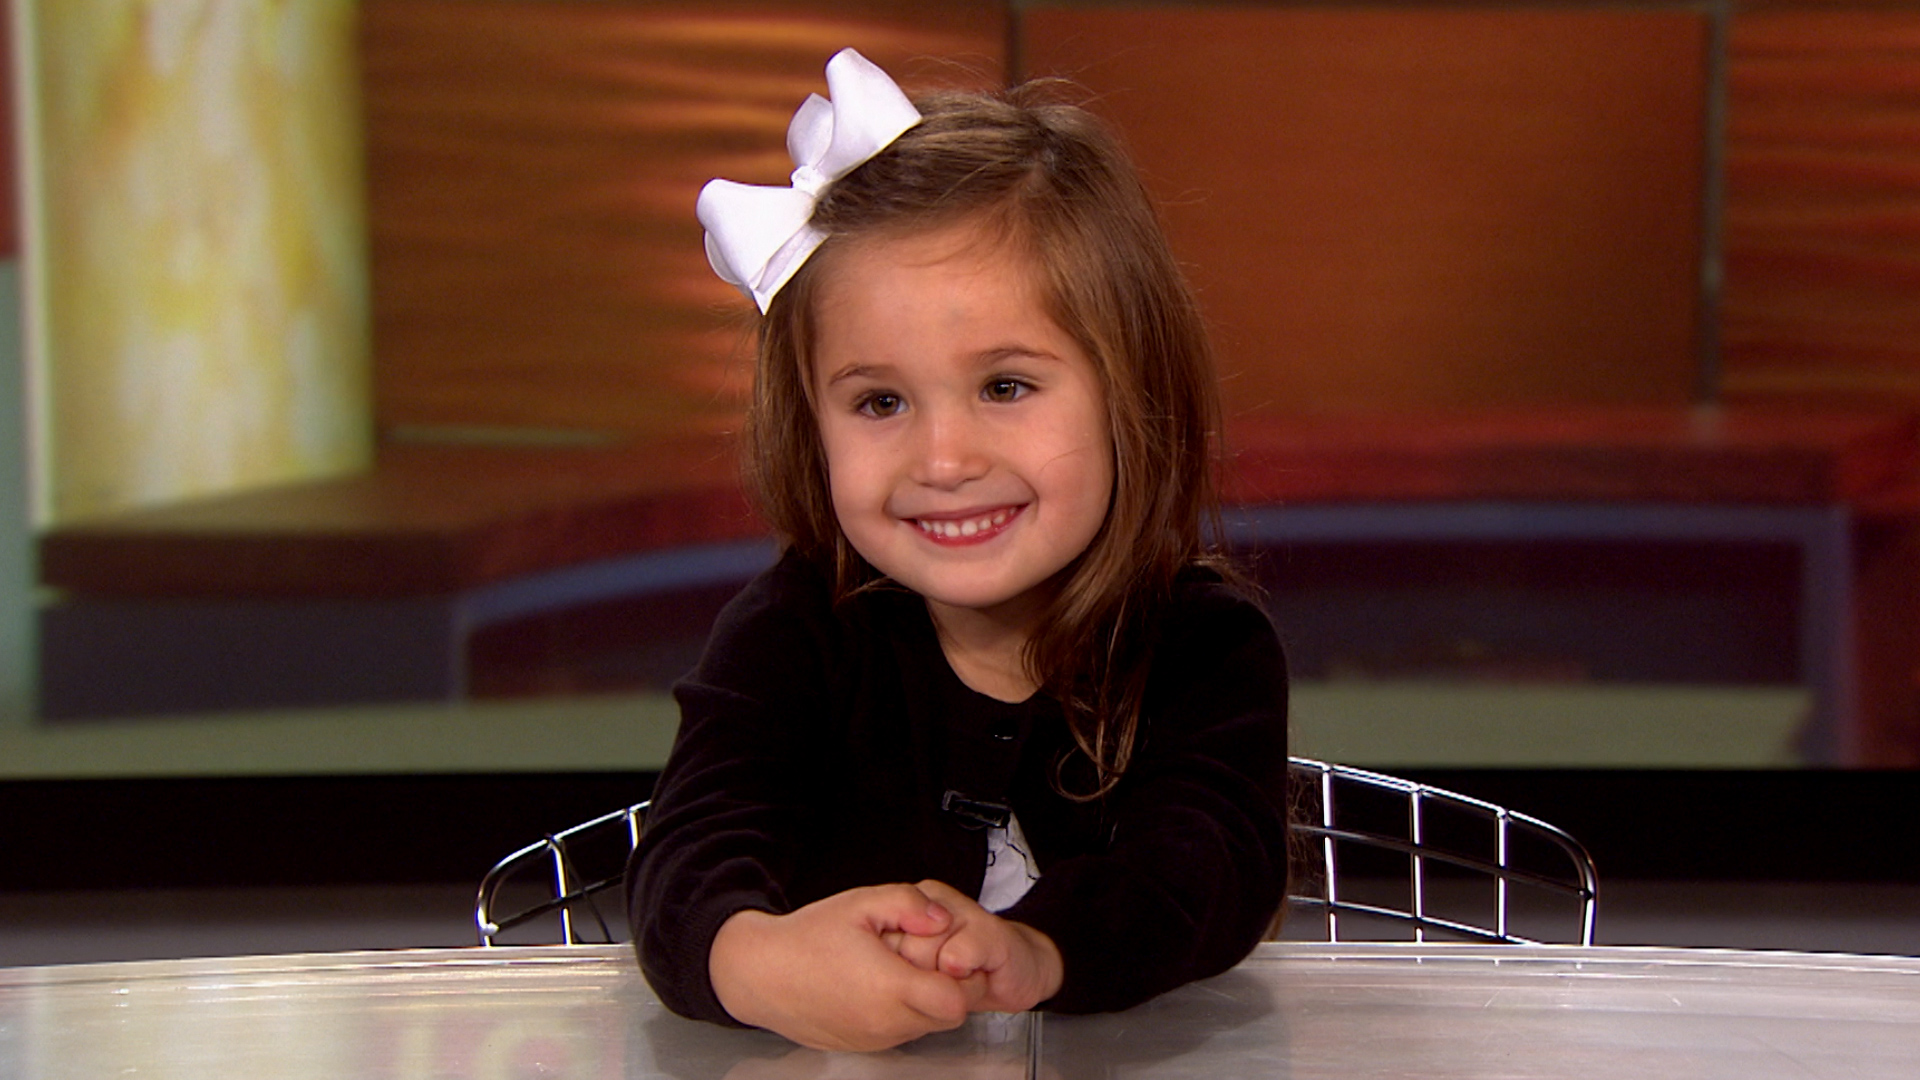 These Little Kids Explaining What Kindness Means Will Melt Your Heart